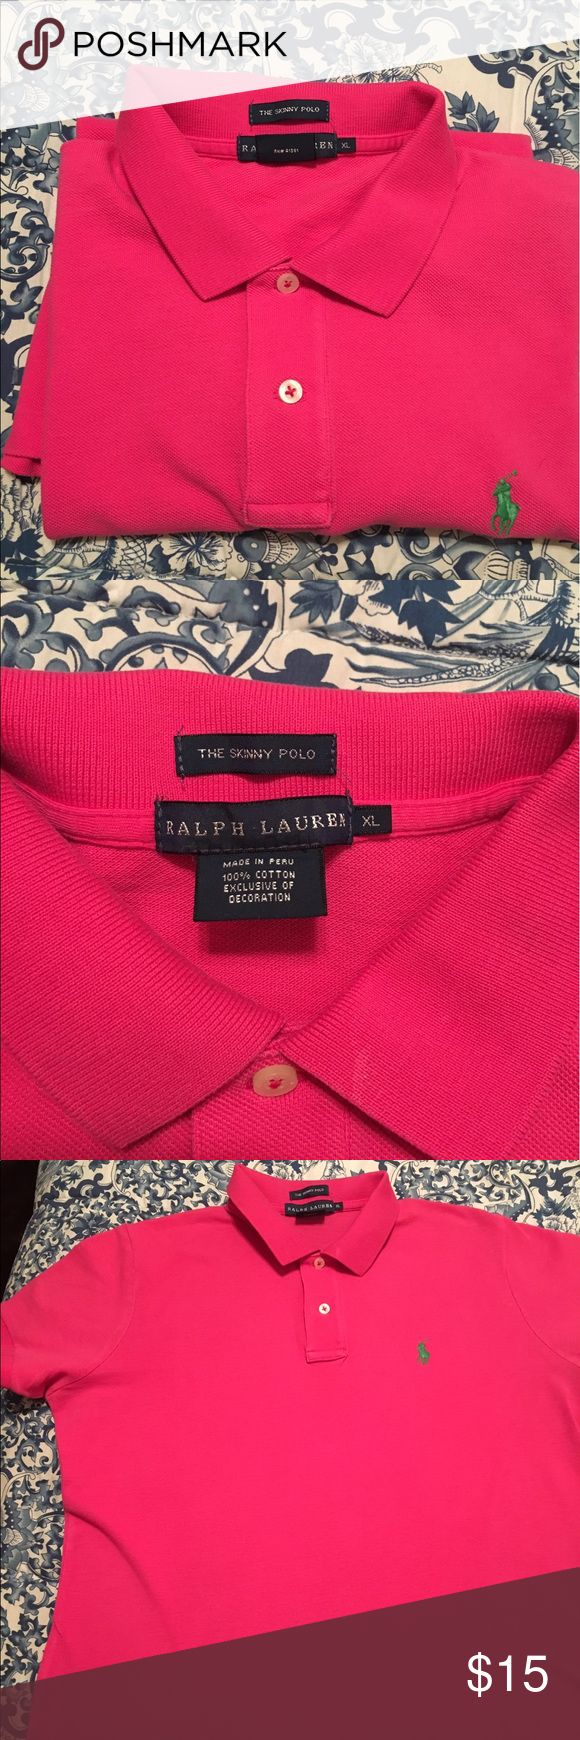 Ralph Lauren Ladies Skinny Fit Polo, Pink Size XL Gently used, pink skinny slim fit, size XL-I wear an 8-10 but these run very small - Ralph Lauren Factory Store Ralph Lauren Tops